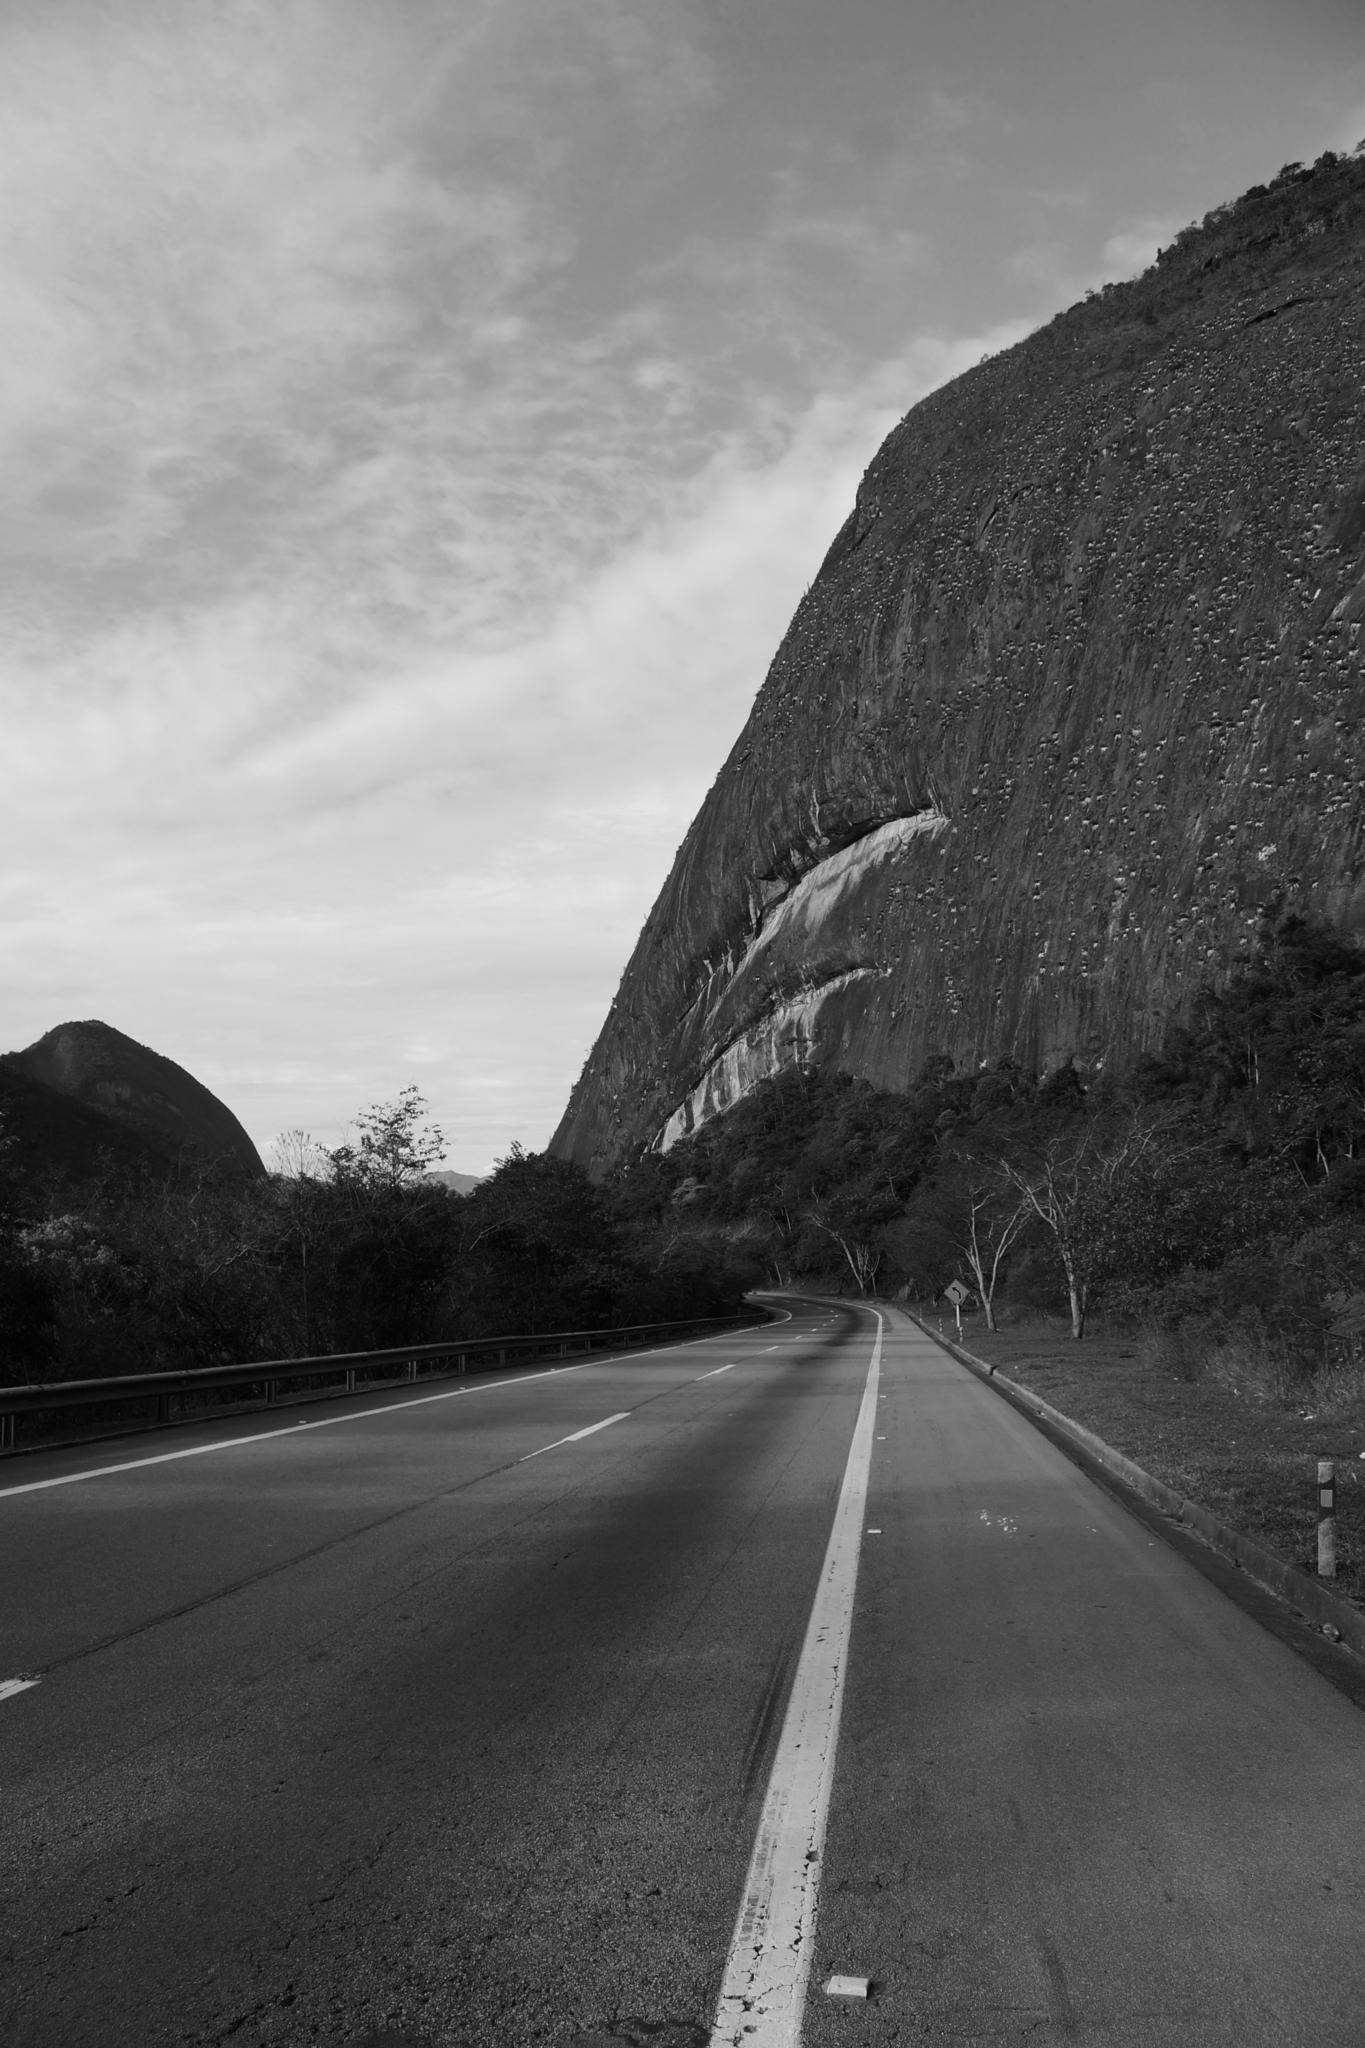 The Mountain Road by vinicius.monsoresdeabreu